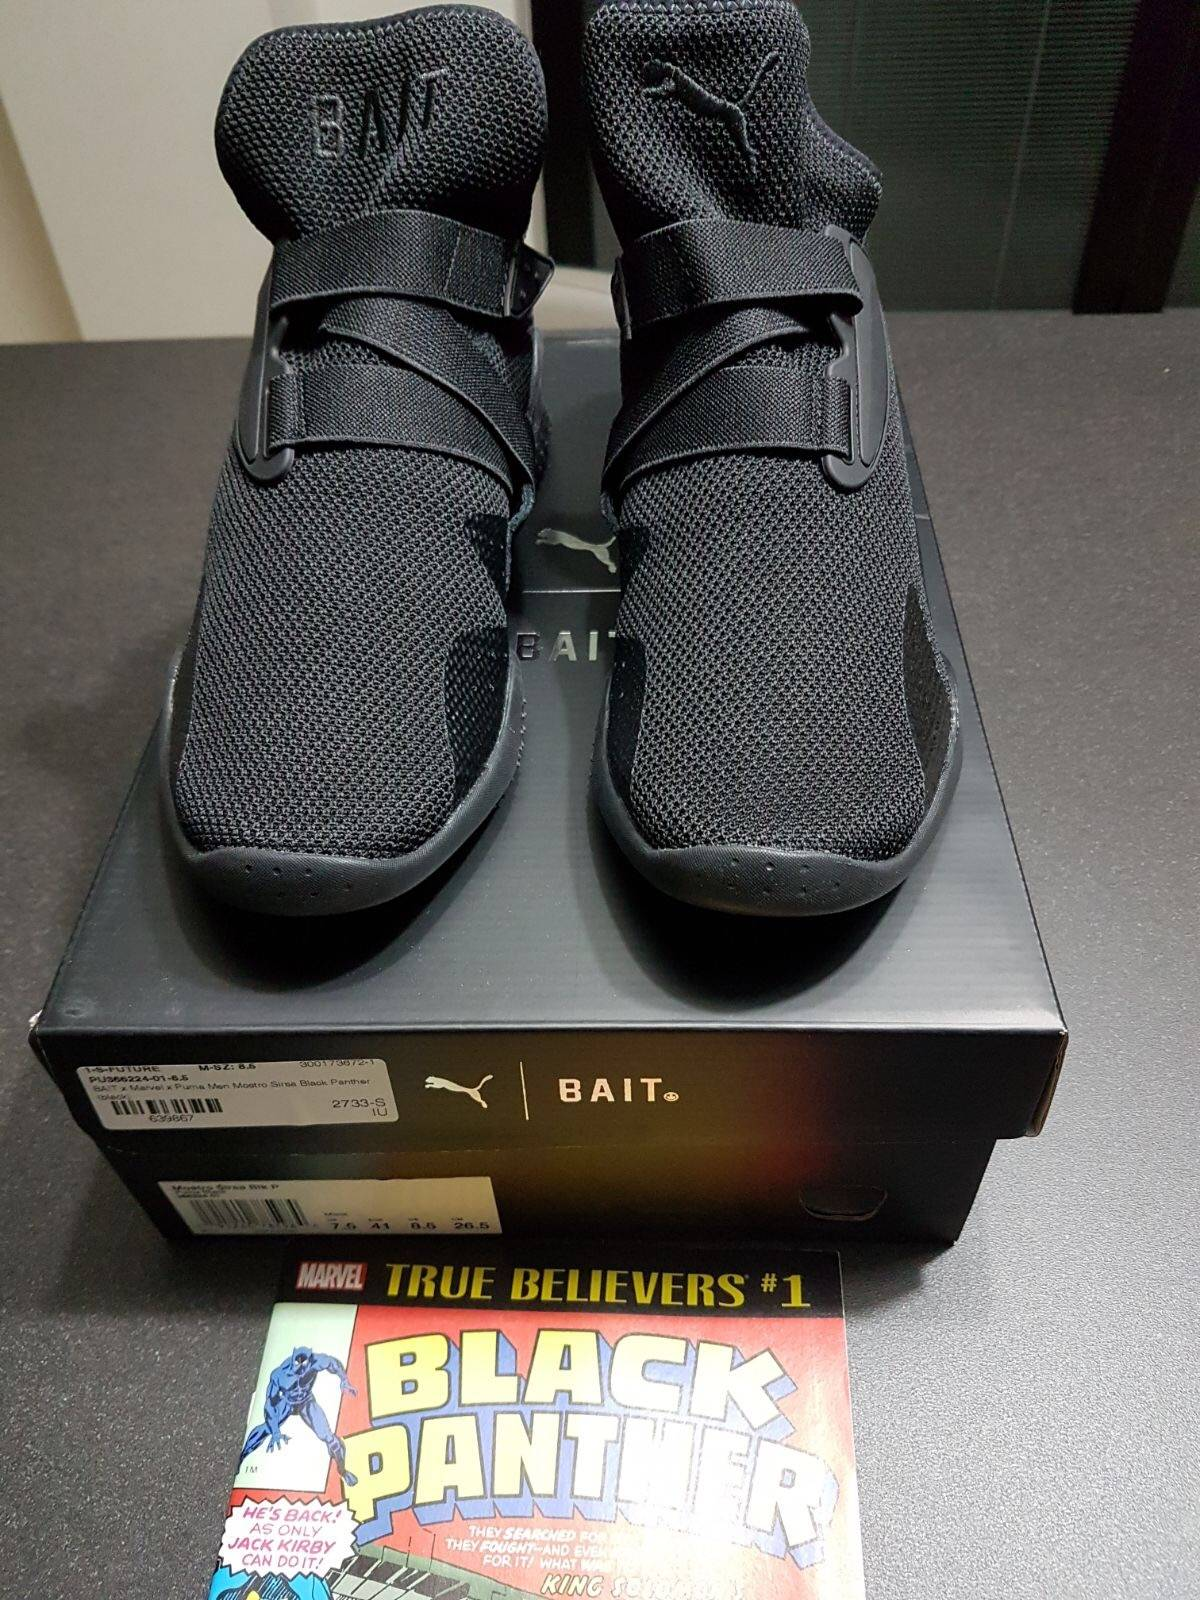 4b1f4330129 Puma Black Panther x BAIT x Puma Mostro Mid Size 9 - Low-Top Sneakers for  Sale - Grailed